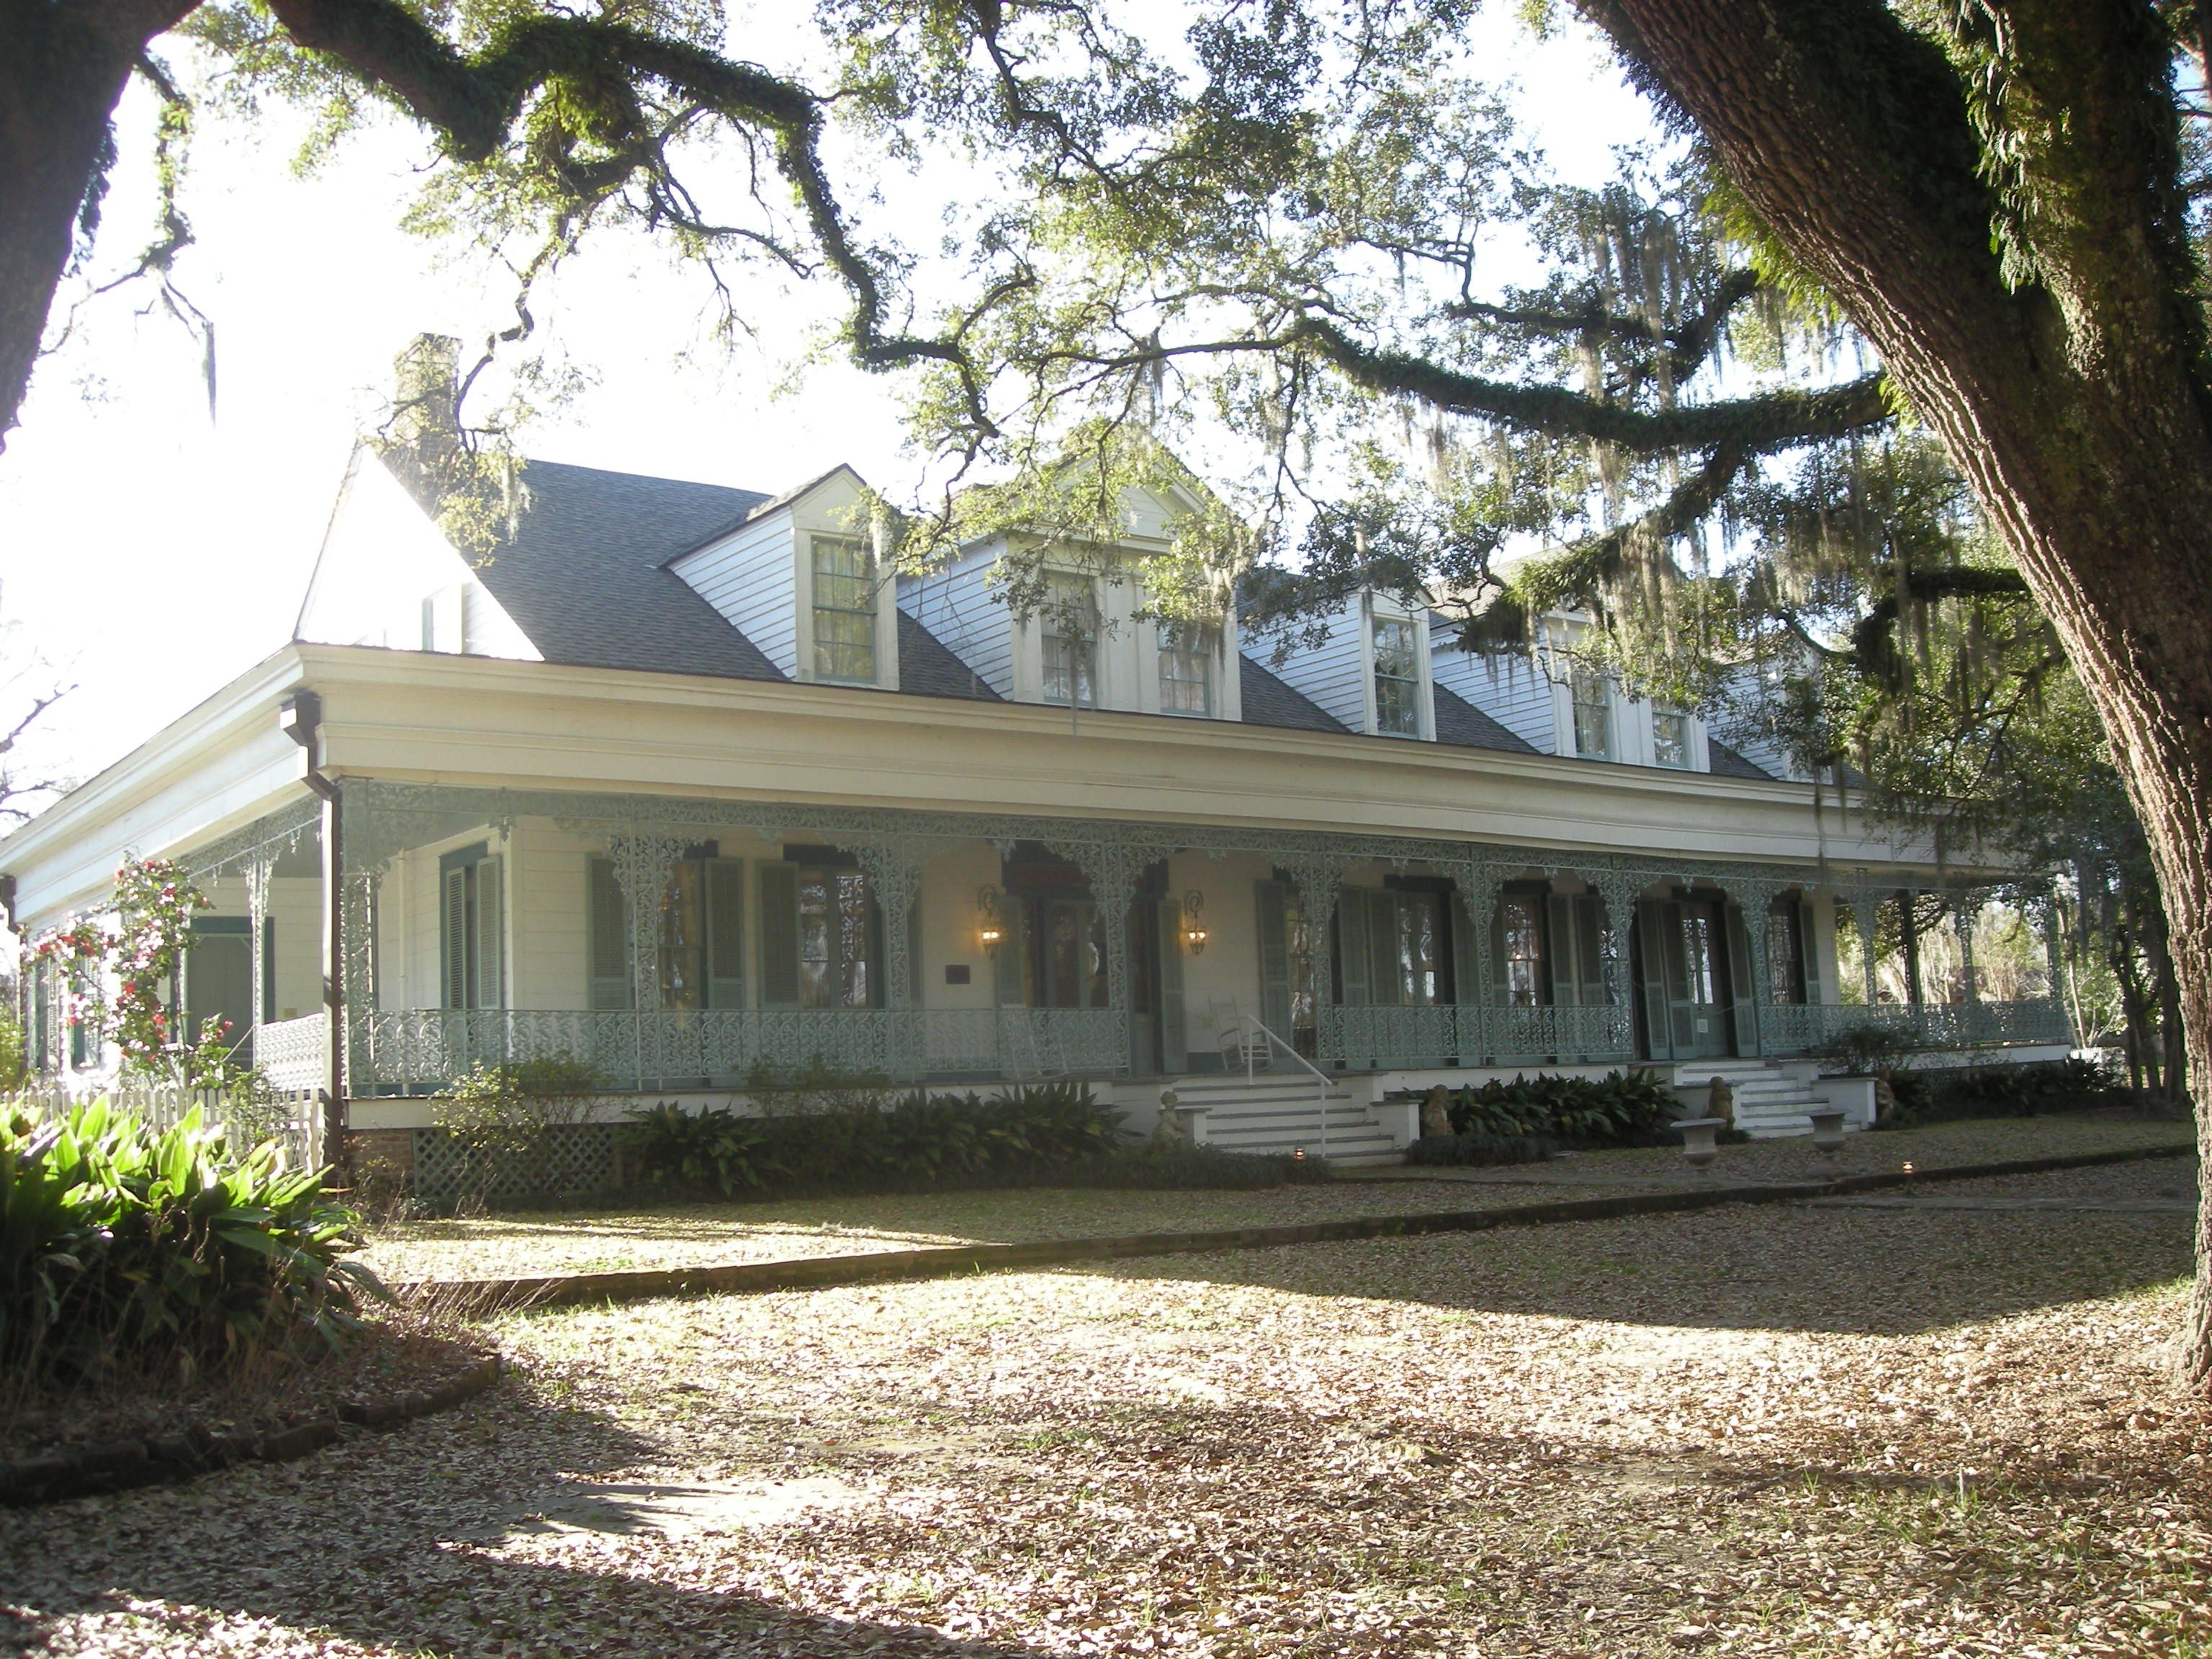 The Myrtles Plantation in St. Francisville, Louisiana.